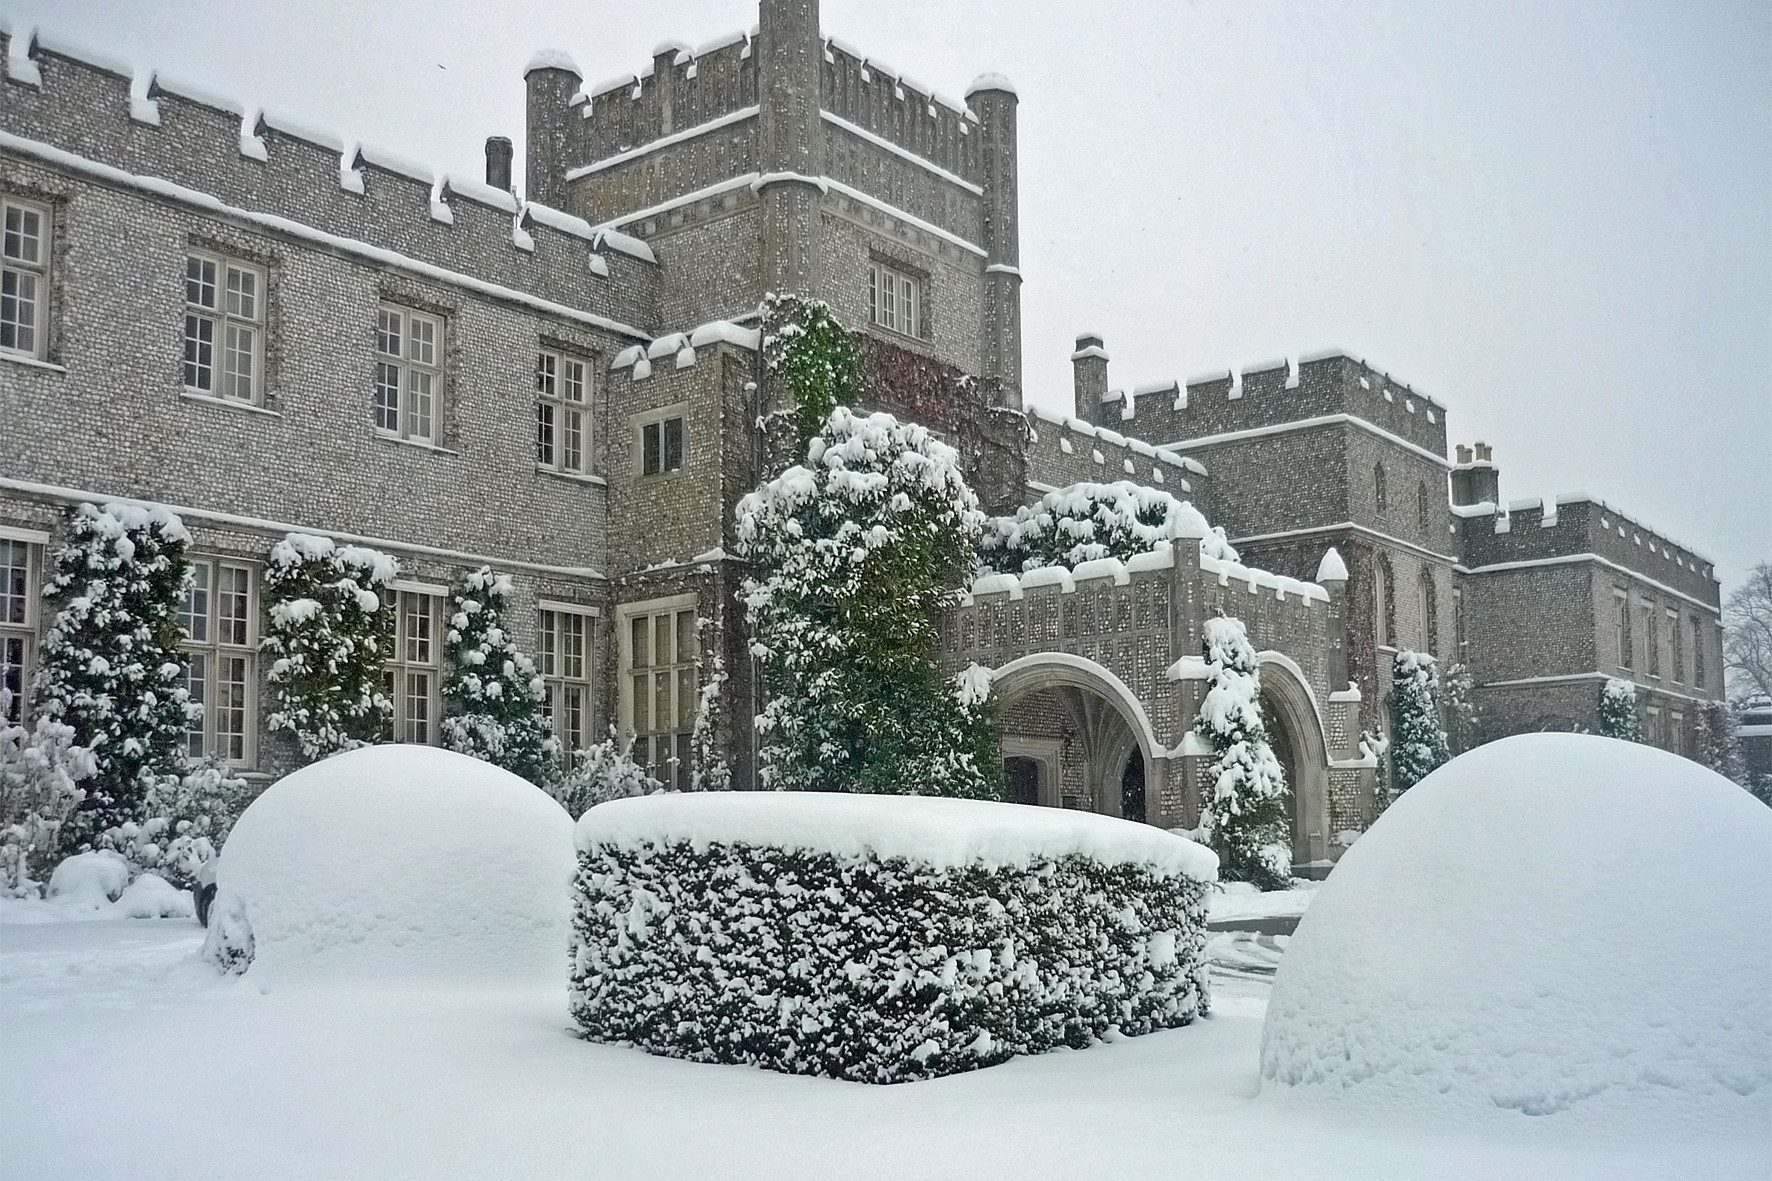 West Dean College in the winter